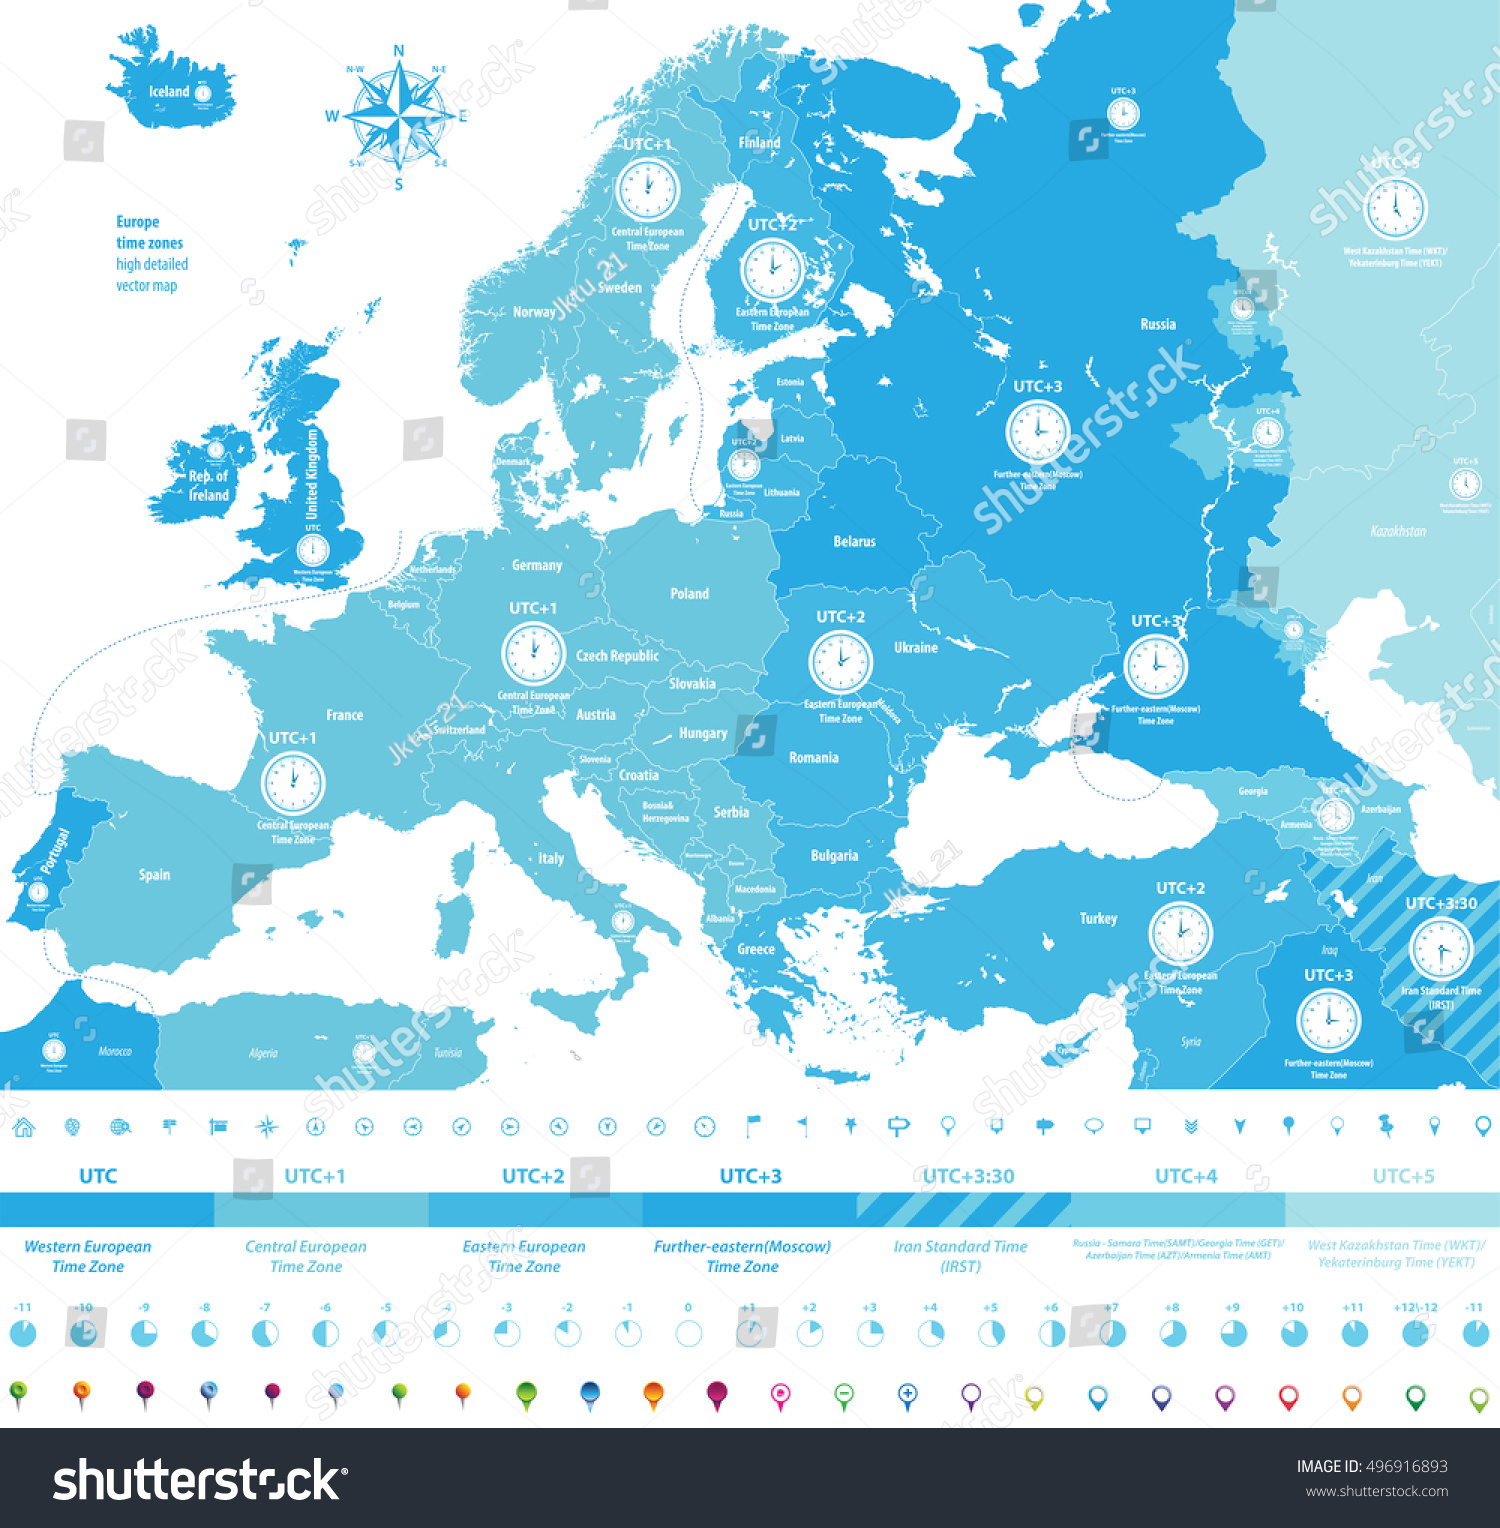 Europe Time Zones High Detailed Map Stock Vector HD Royalty Free